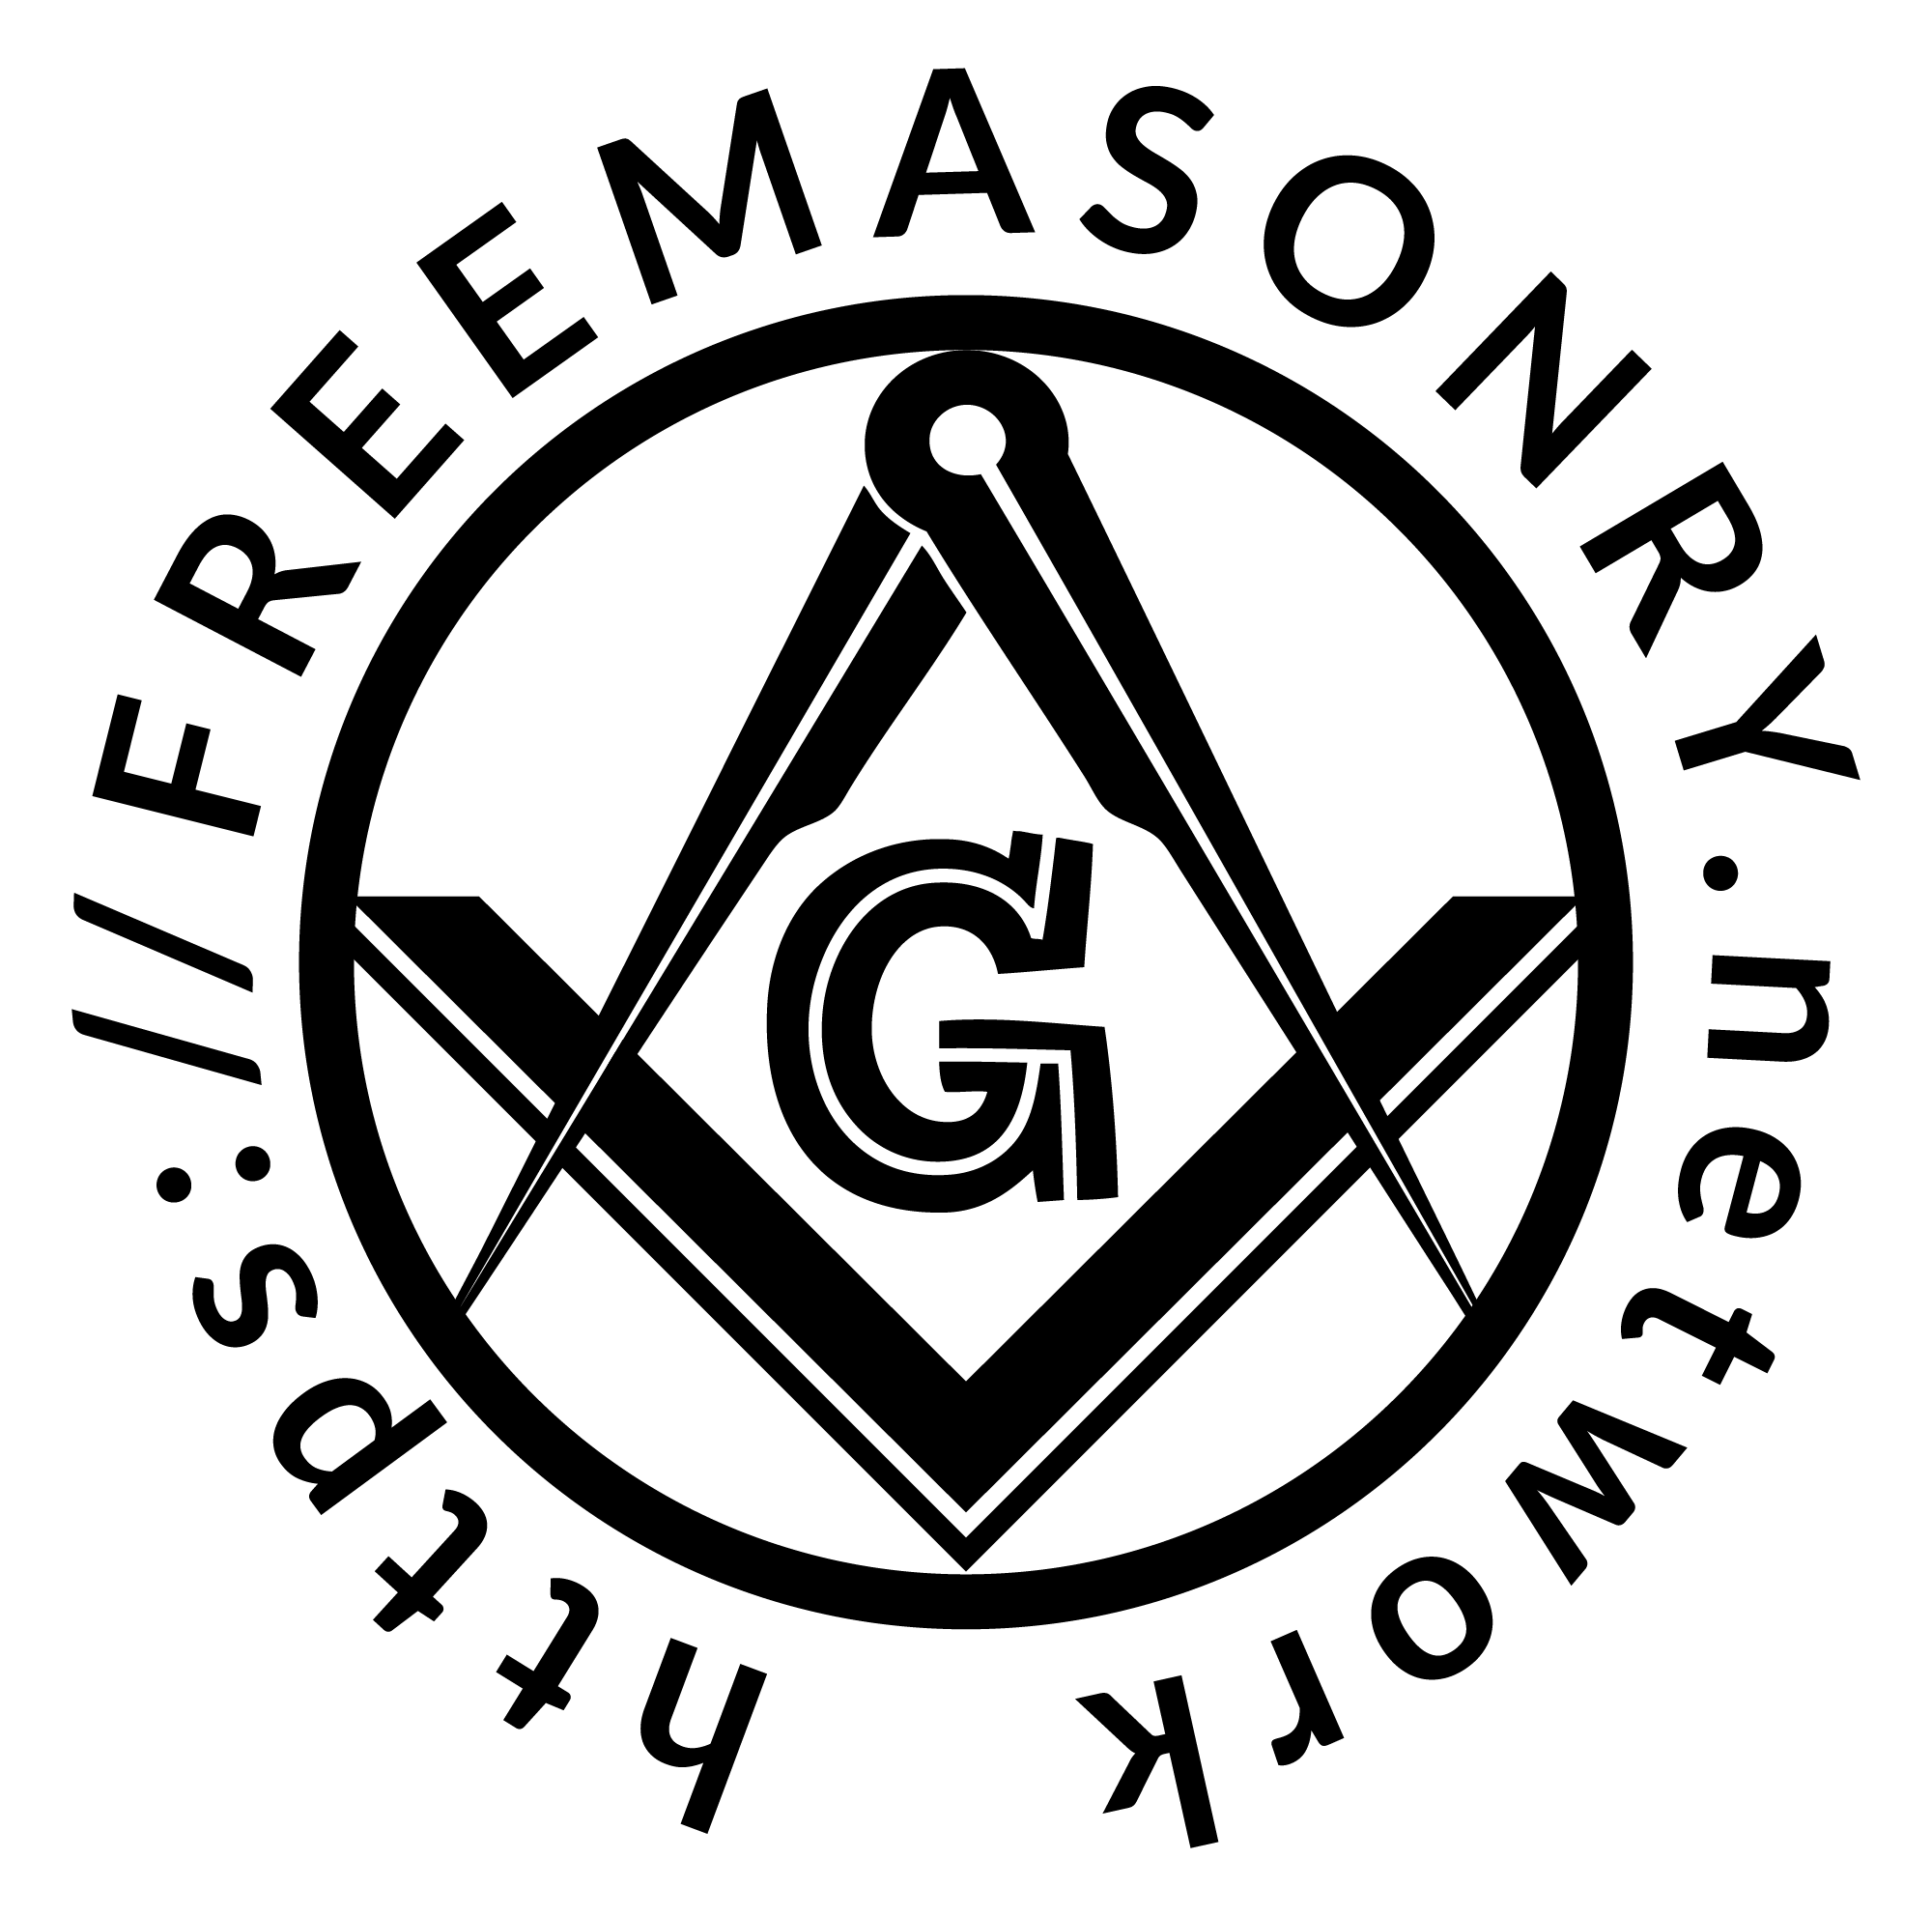 OTHER EXTERNAL ACITIVITIES OF FREEMASONRY